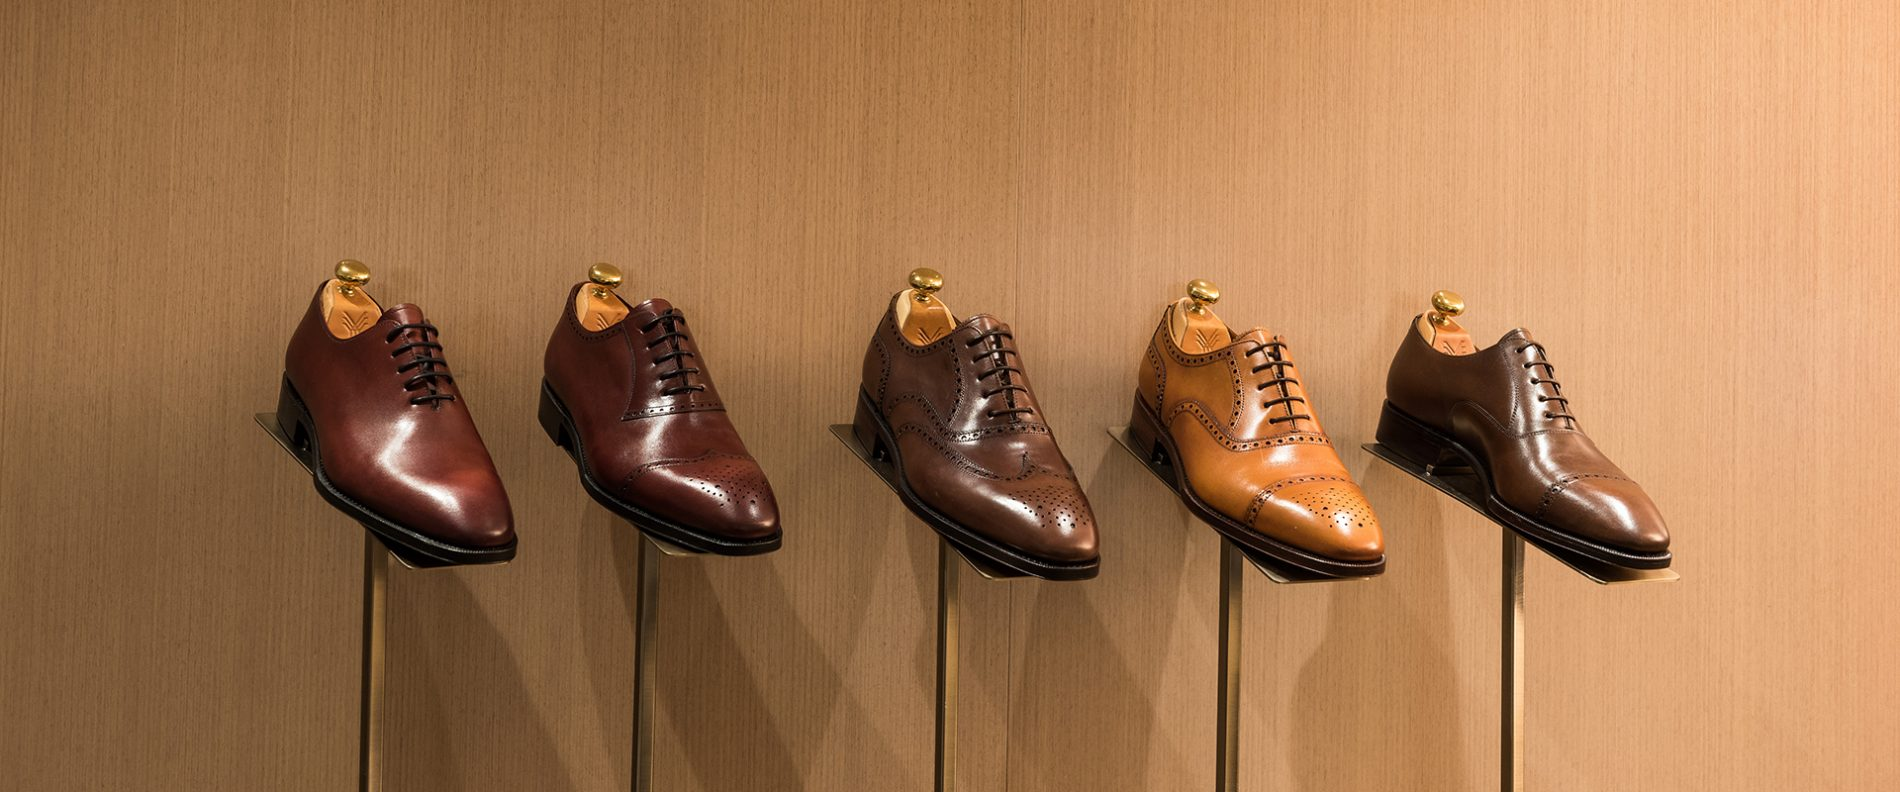 El Corte Inglés Serrano 52 Luxury Menswear Footwear Madrid